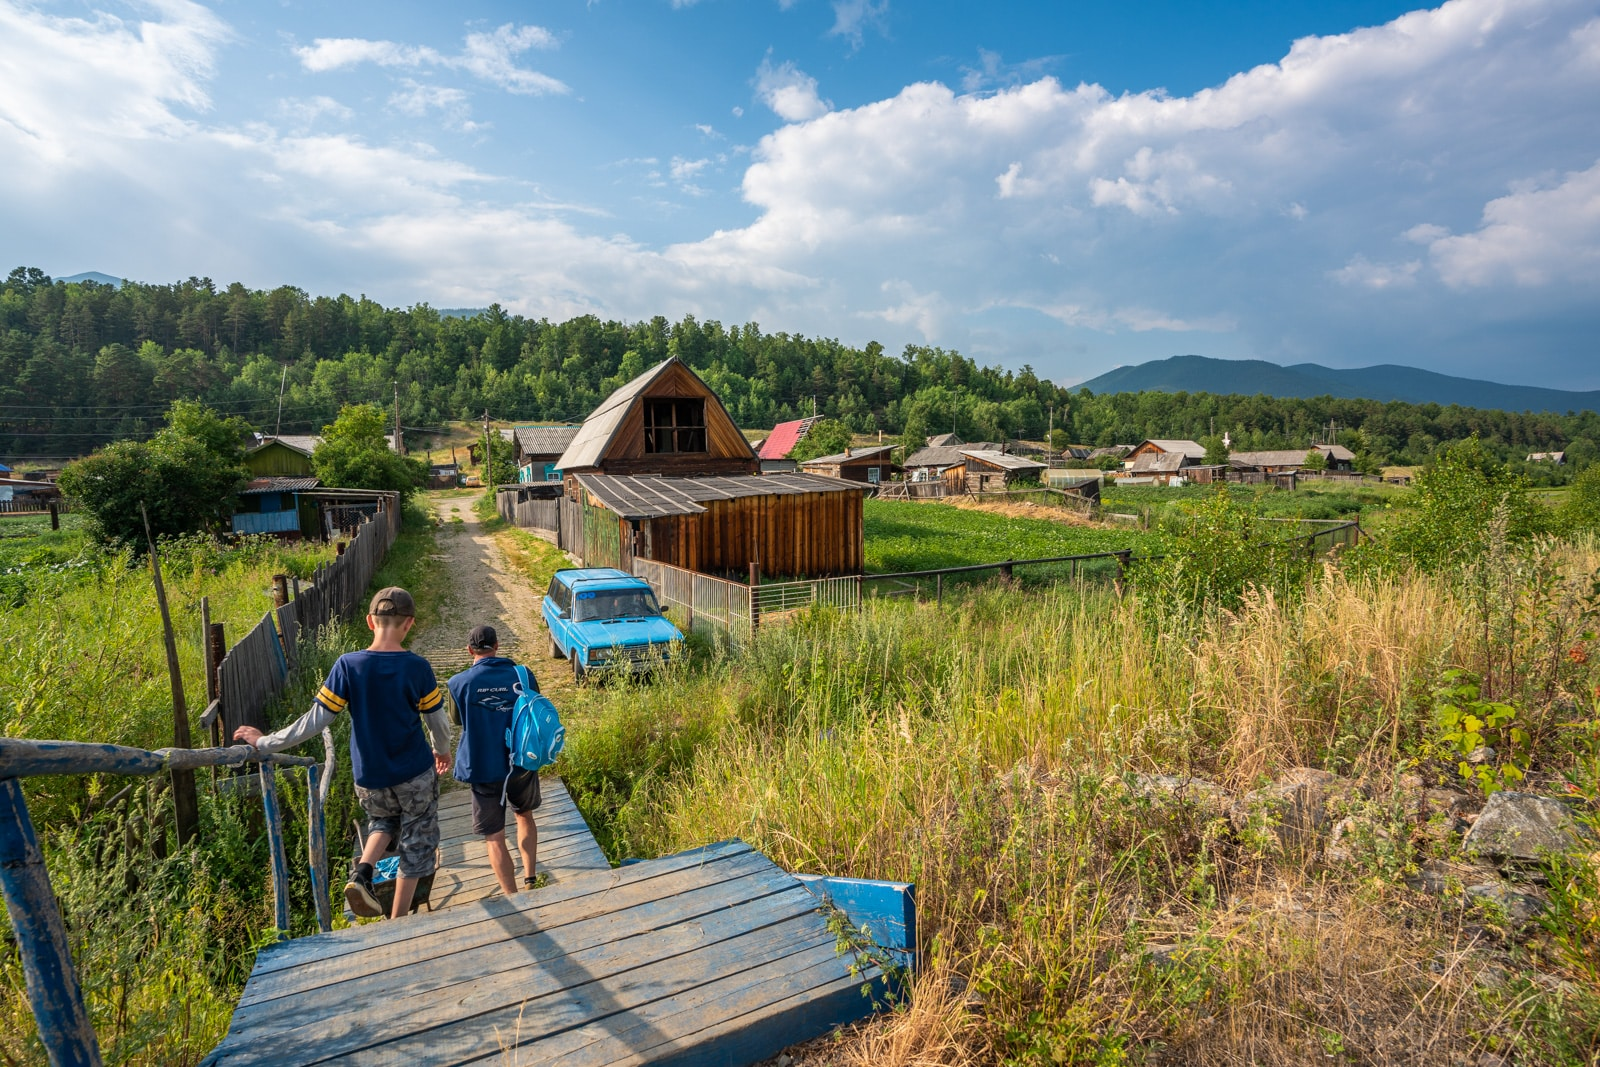 Father and son walking in Dushkachan village near Severobaikalsk, Siberia, Russia